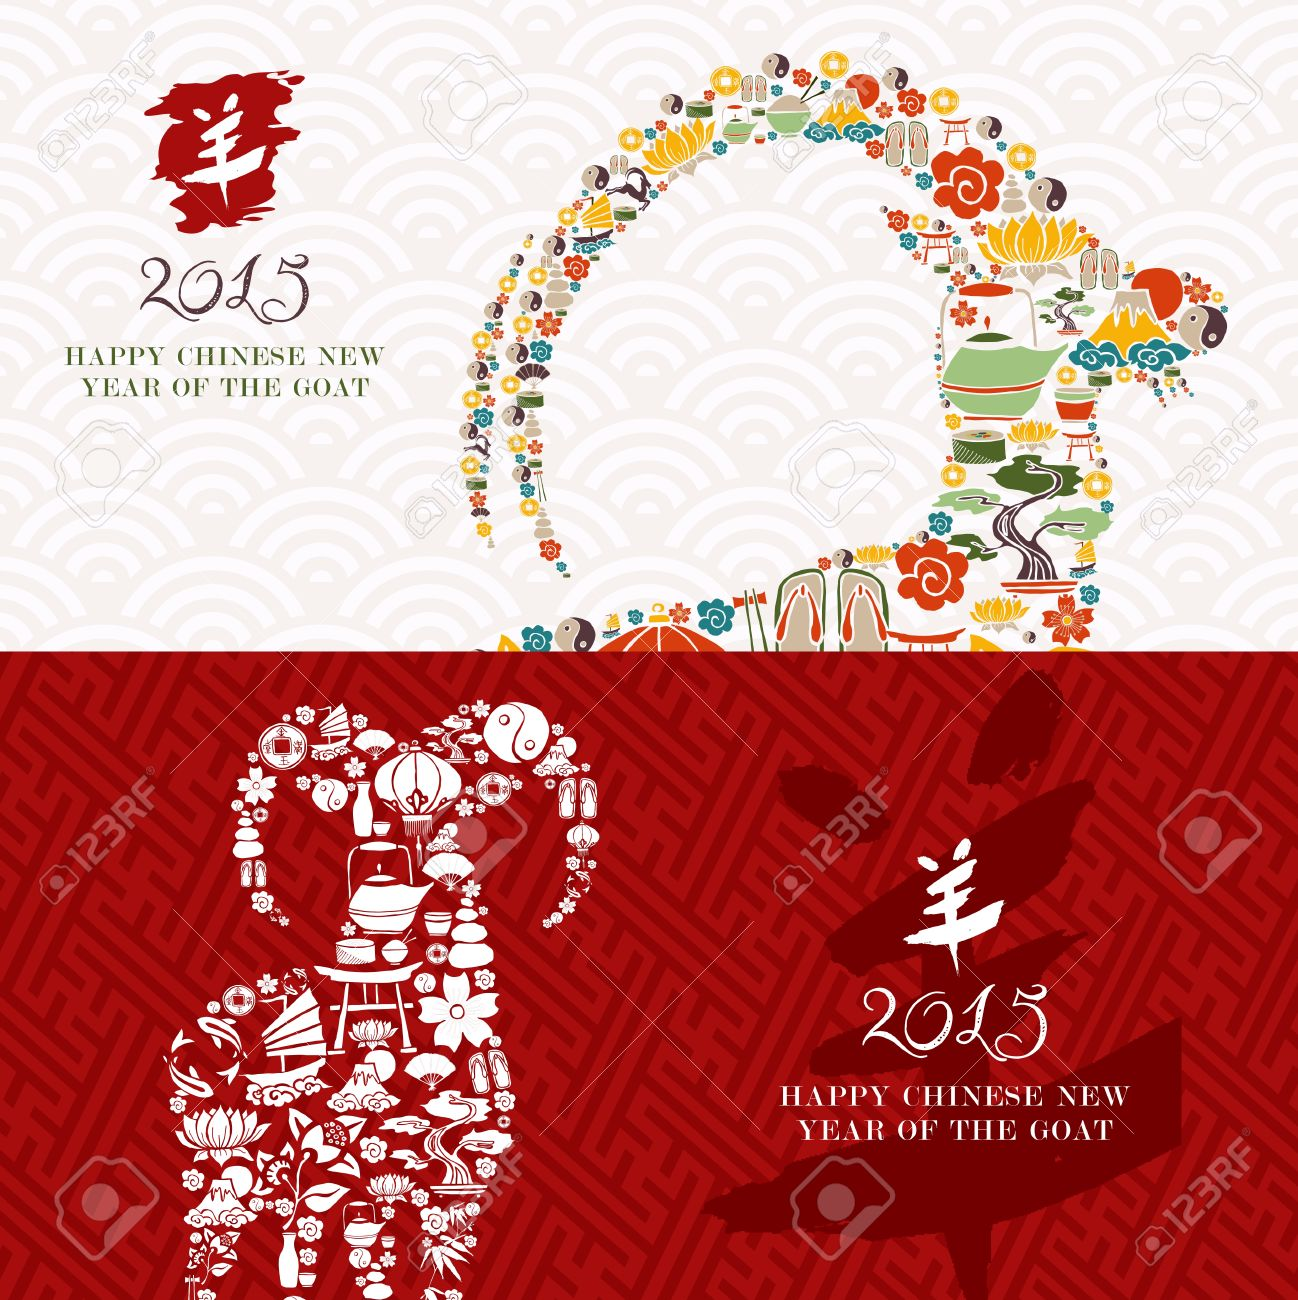 2015 Chinese New Year Of The Goat Holidays Greeting Cards Set